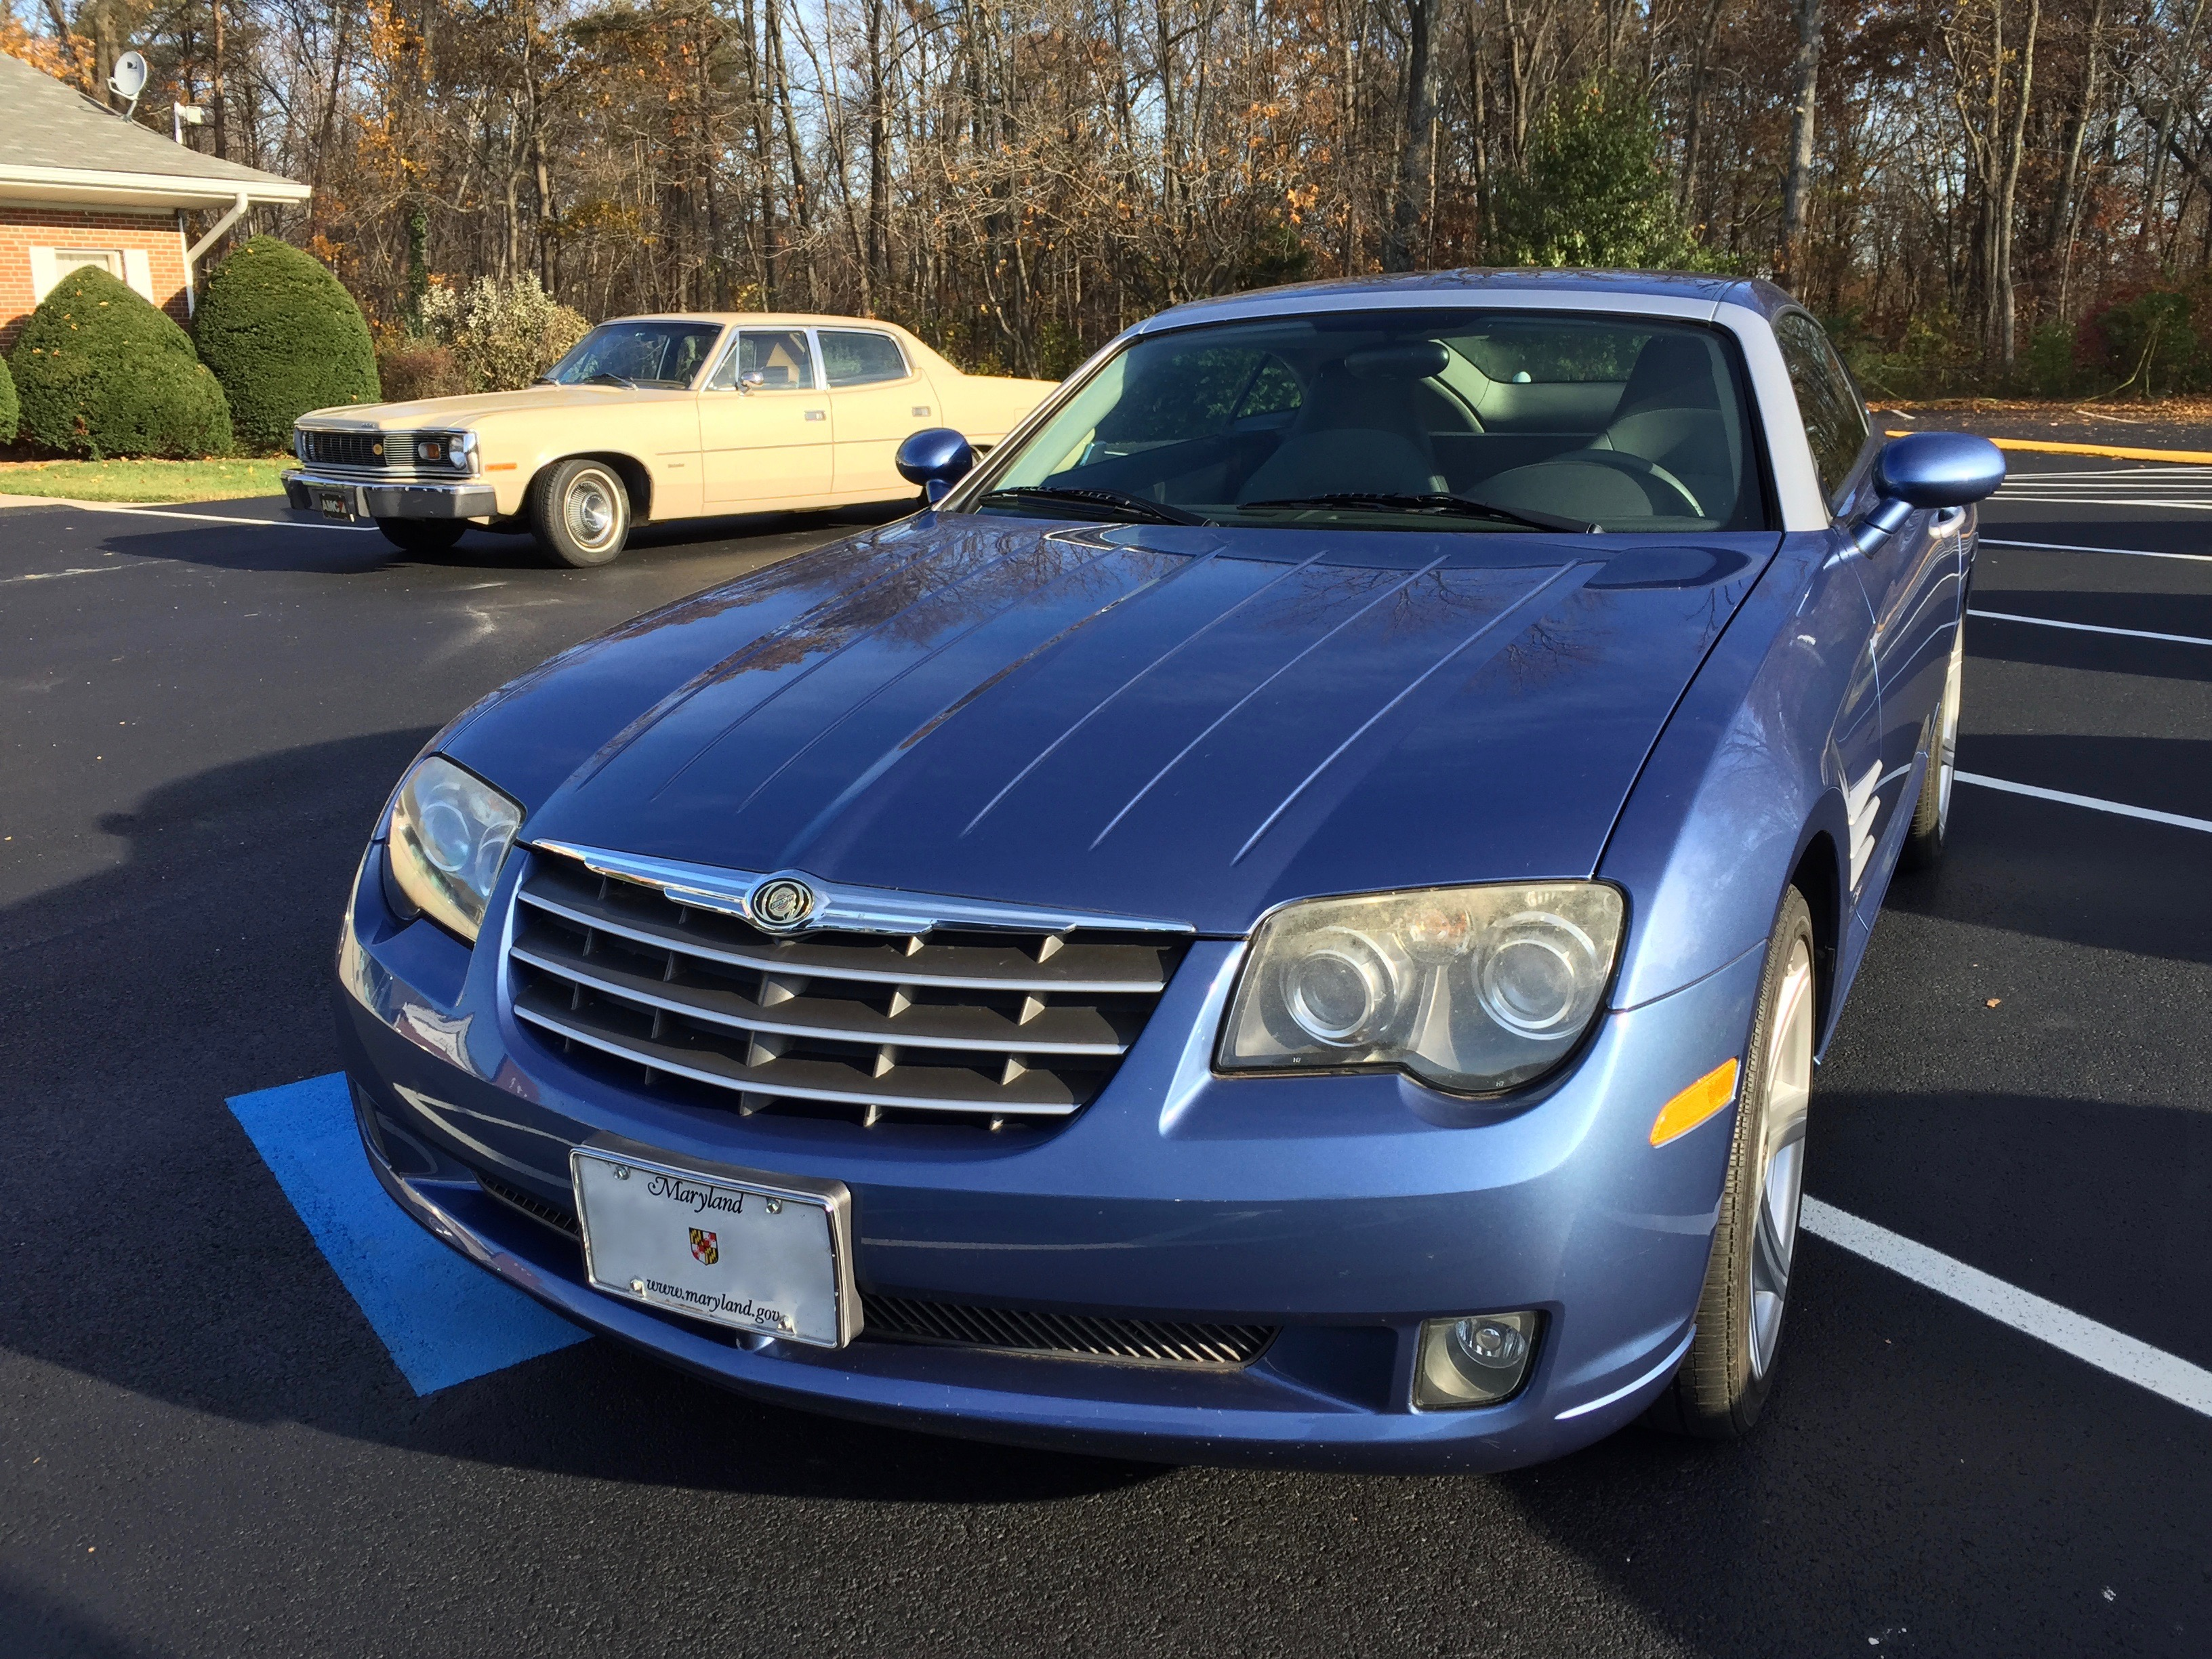 File:Chrysler Crossfire Fastback In Damascus MD 1of2